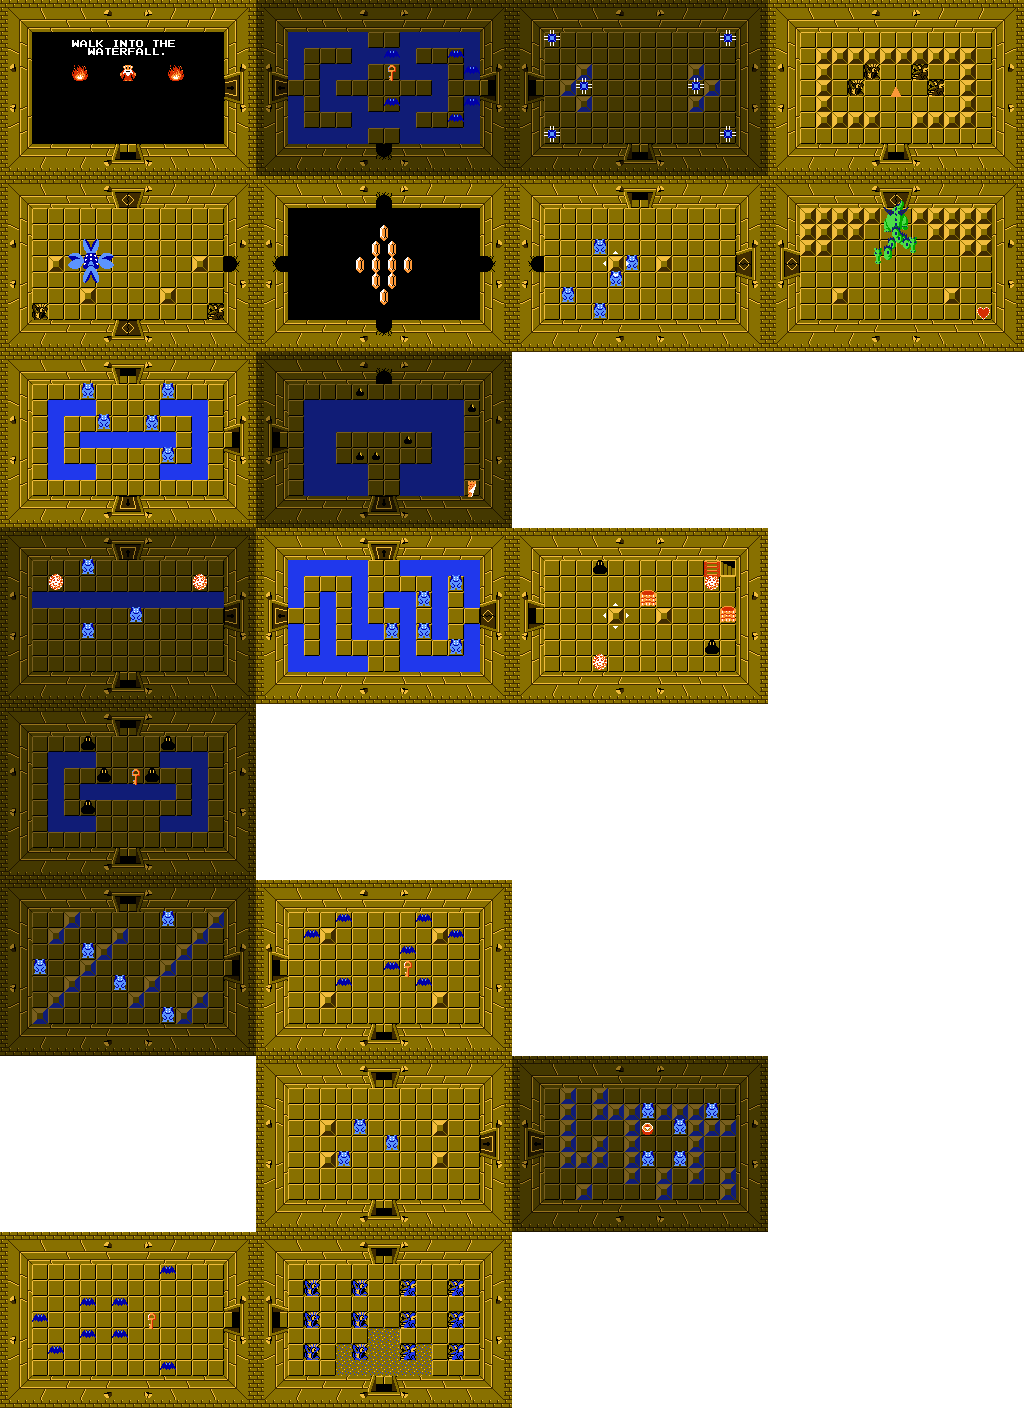 Legend Of Zelda Secrets Map : legend, zelda, secrets, Legend, Zelda, Secrets, Maping, Resources